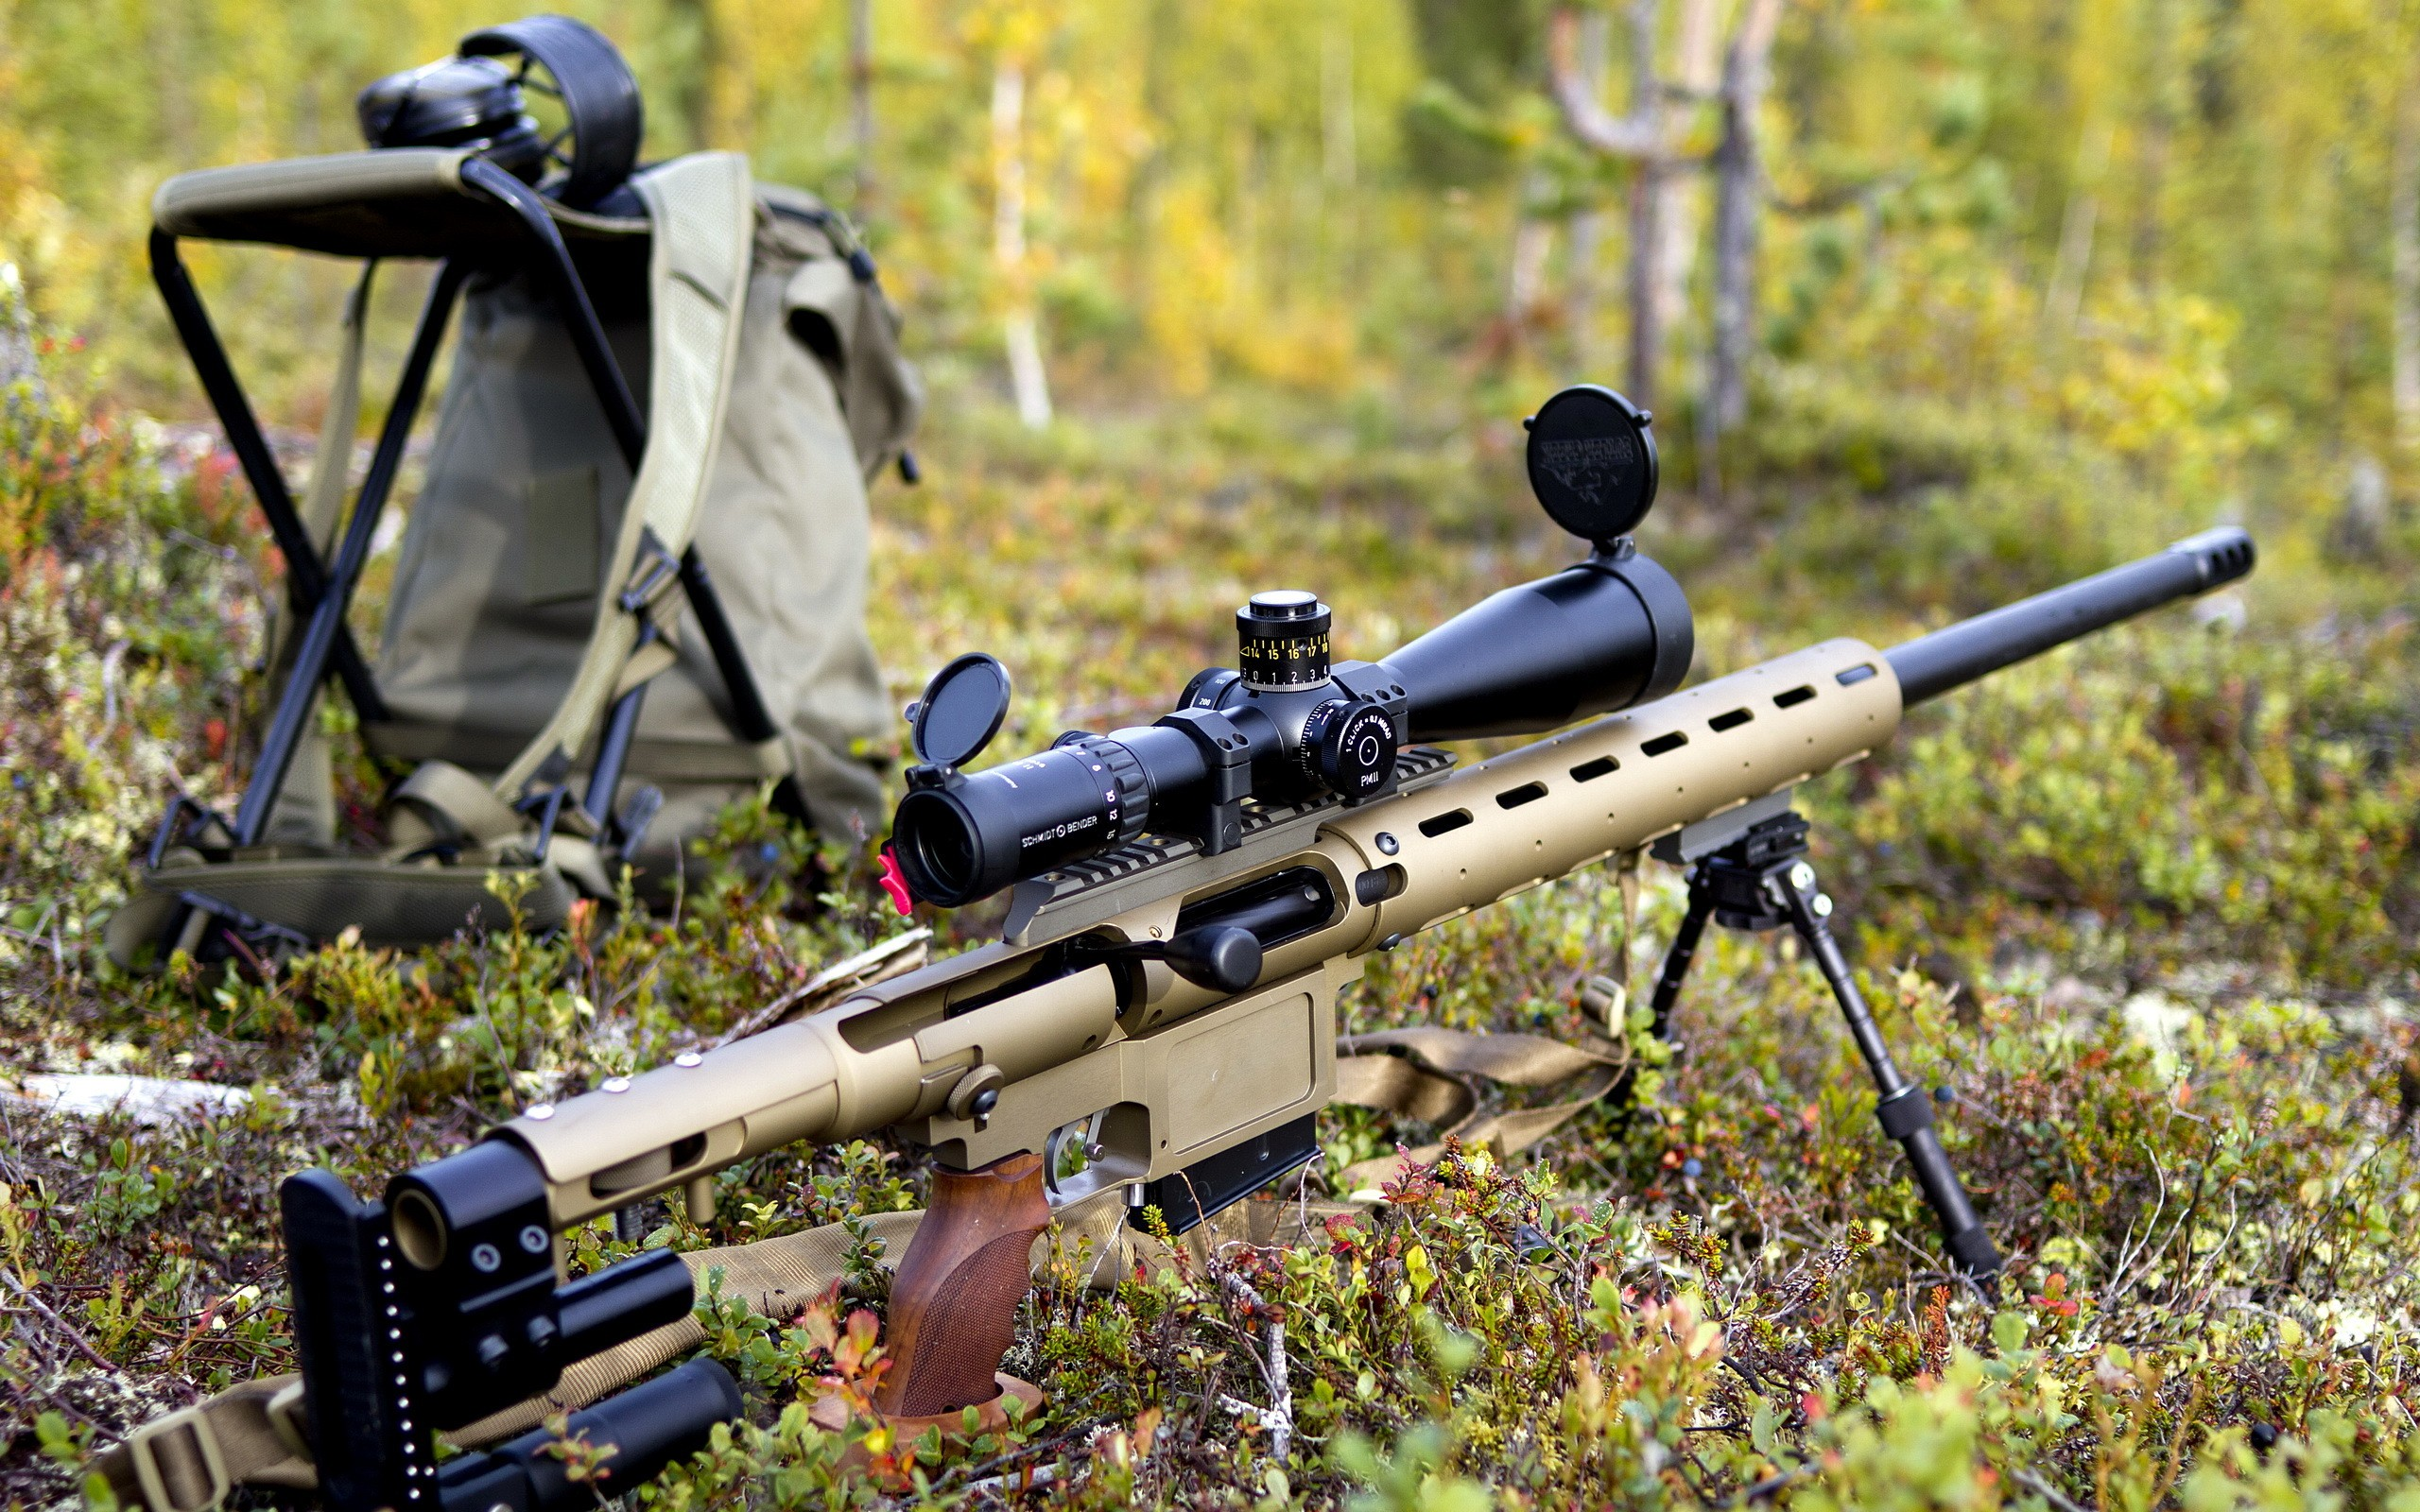 Lapua 338 Sniper Rifle Full HD Wallpaper And Background Image